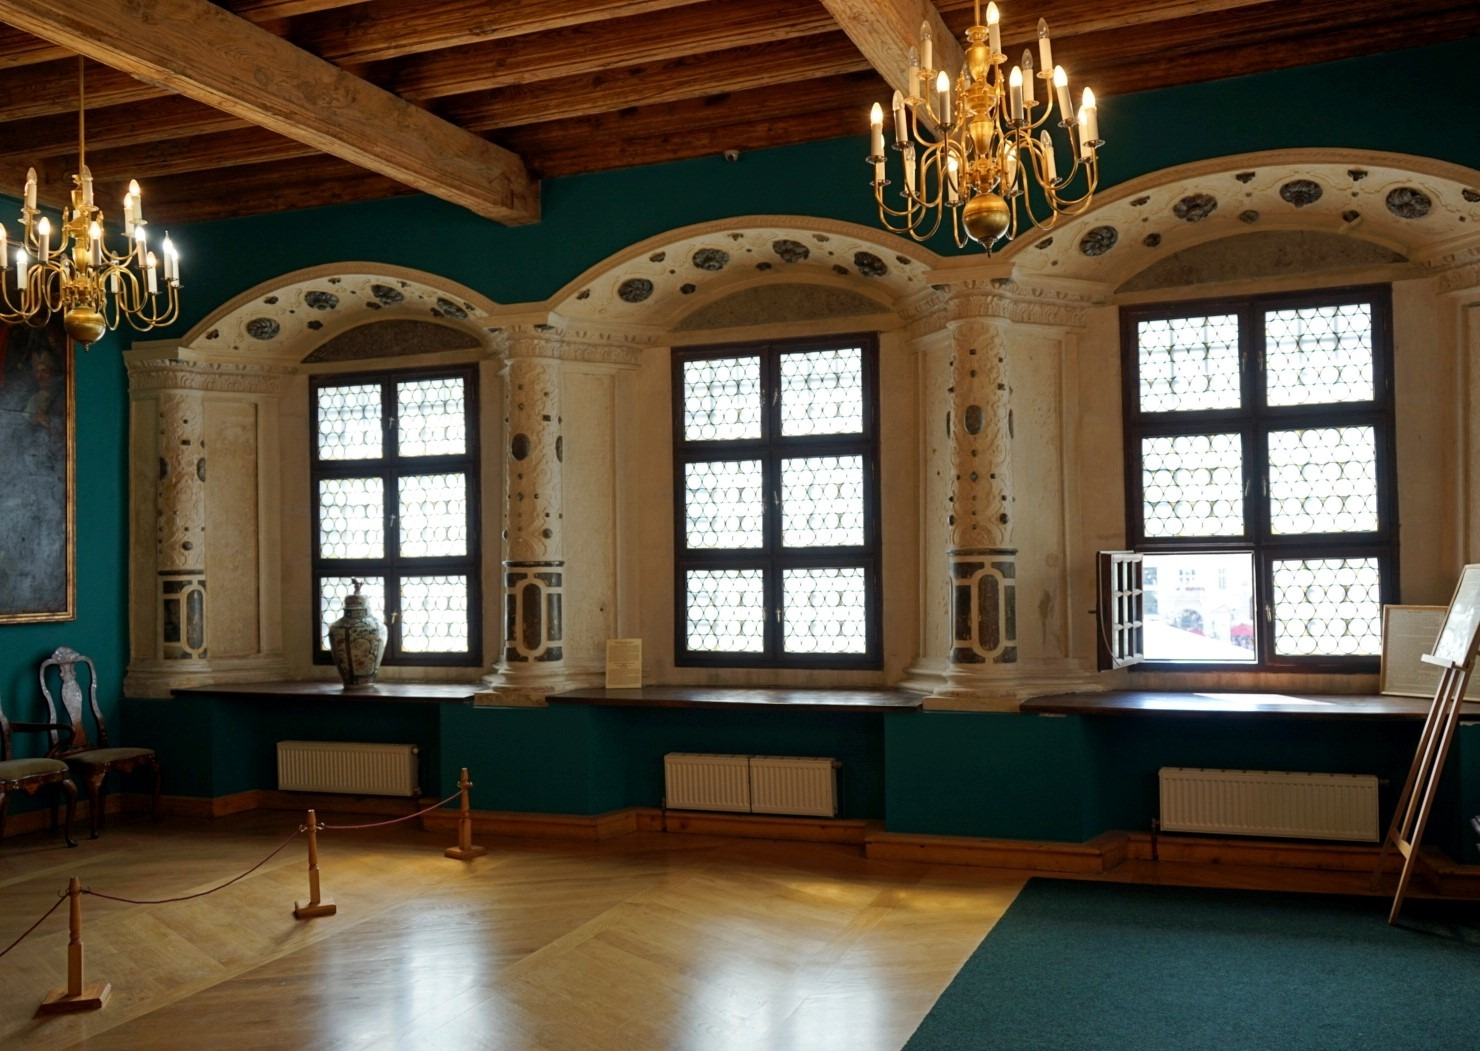 The exhibition hall in Lviv museum - Bandinelli palace